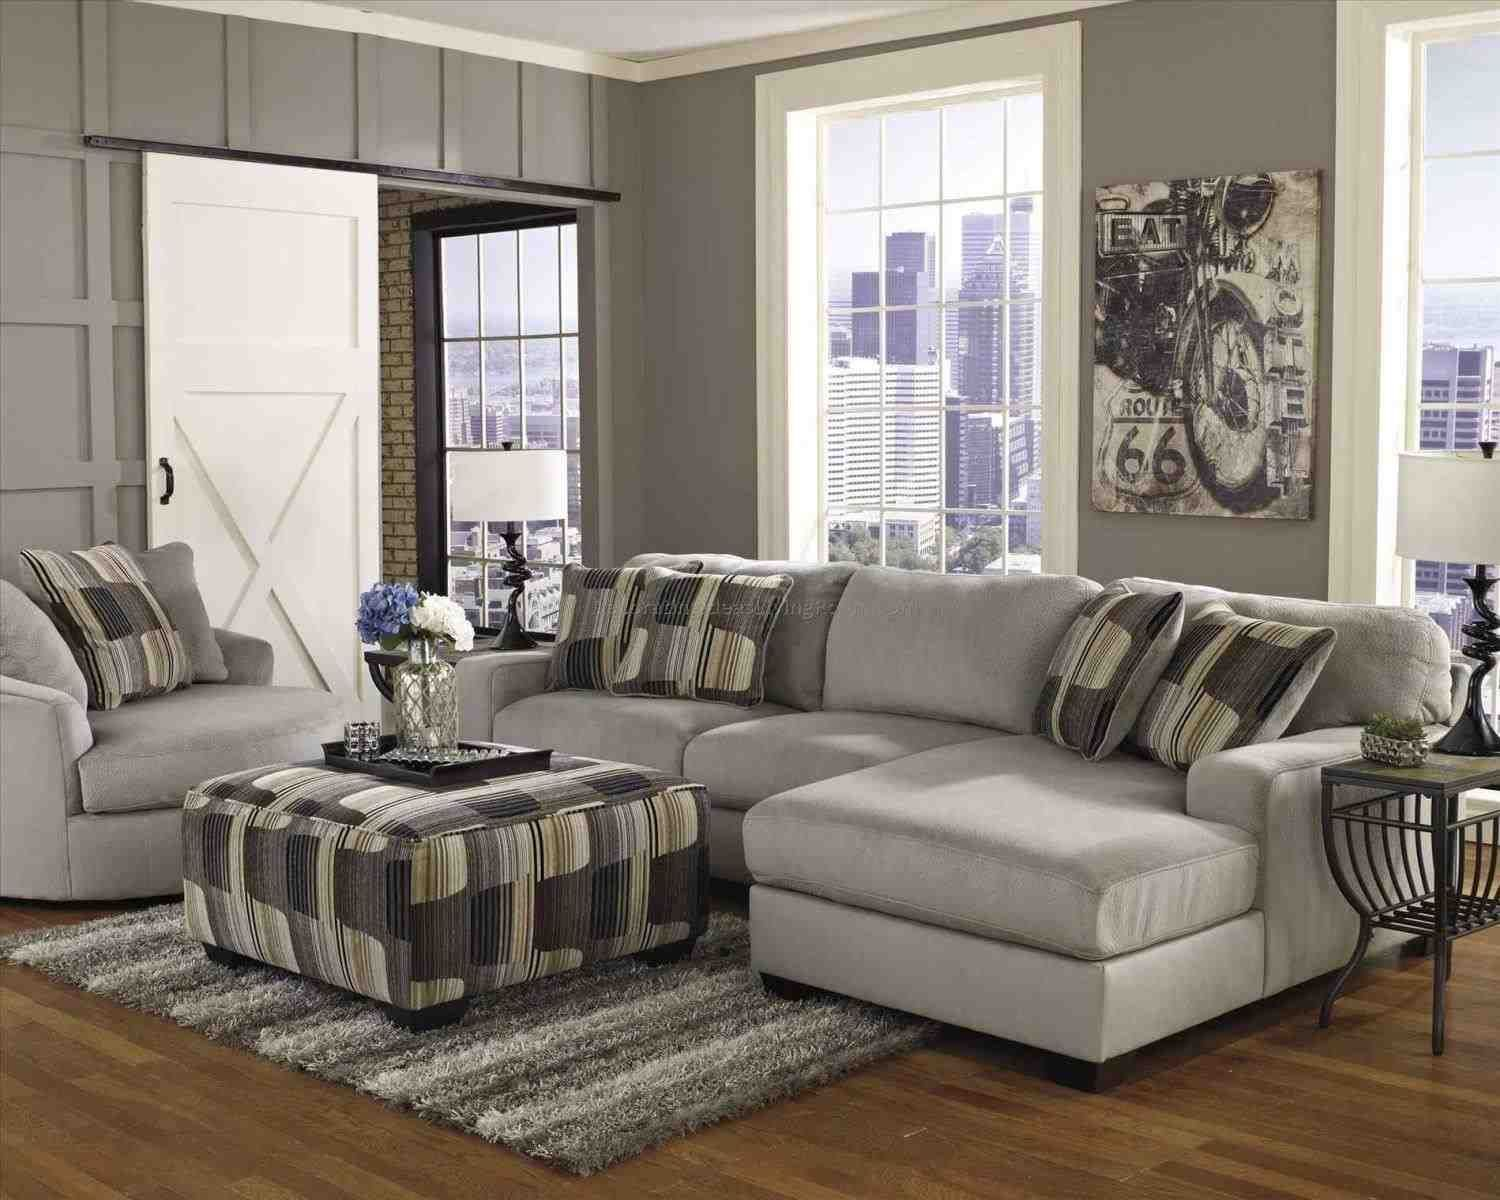 Cheap Living Room Furniture Augusta Ga   Cheap Sectional Sofas Columbus Ga  Ezhandui Com Cheap Living